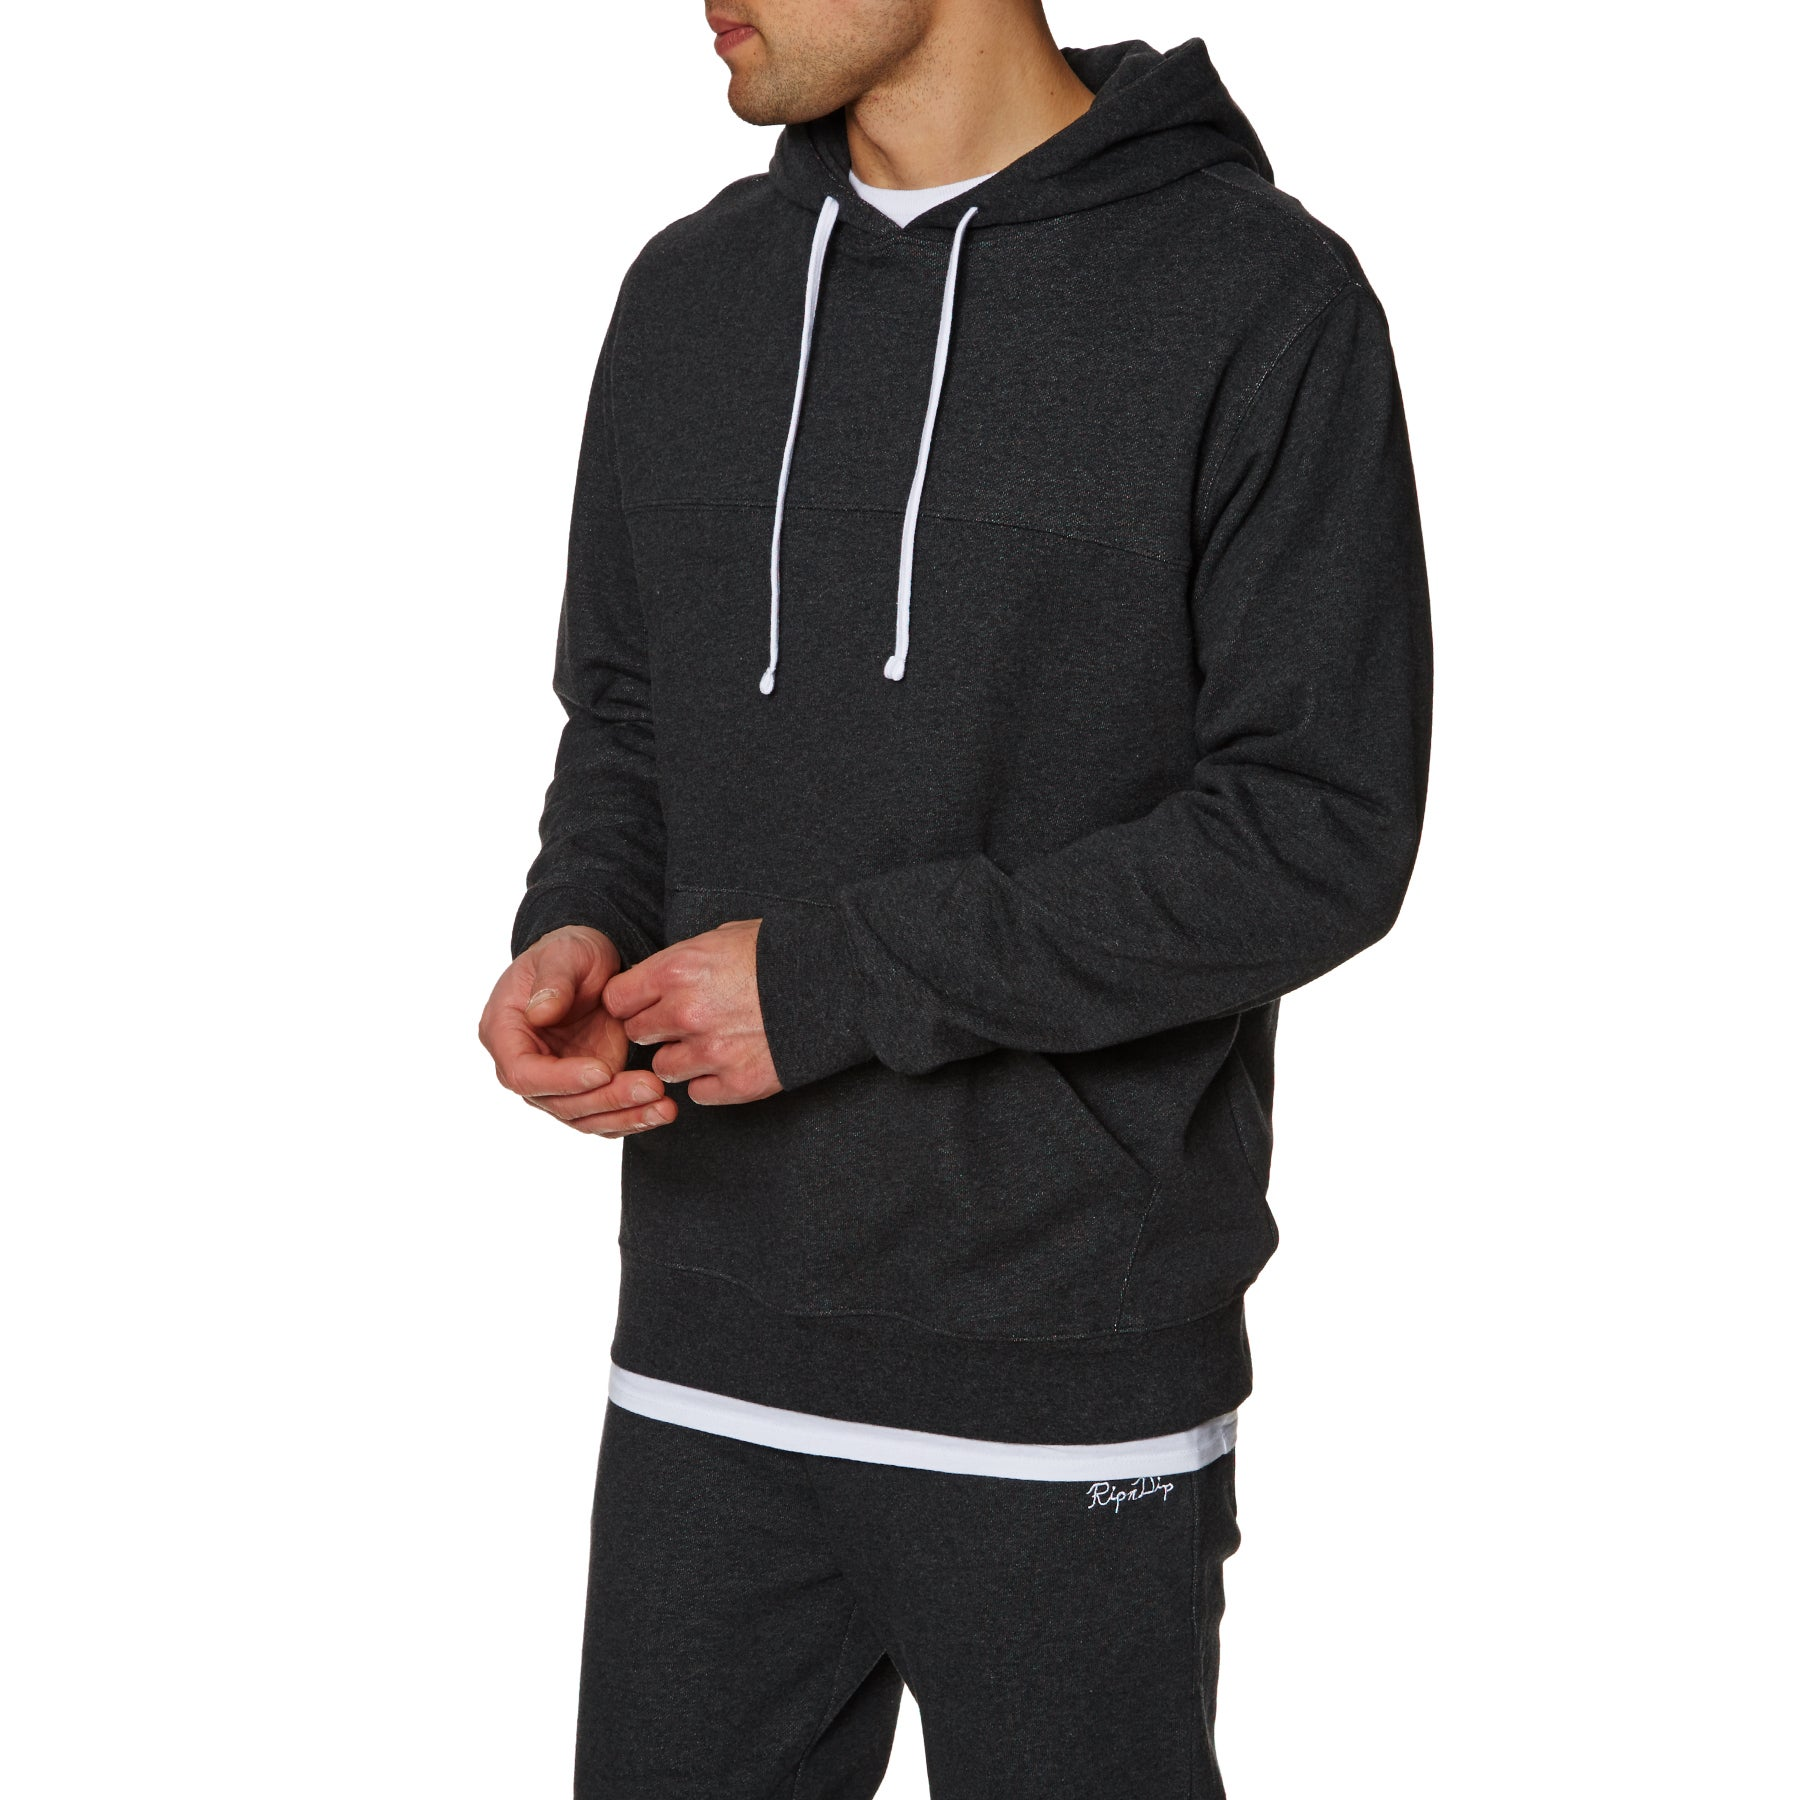 Rip N Dip Jogger Embroidered Pullover Hoody - Charcoal Heather